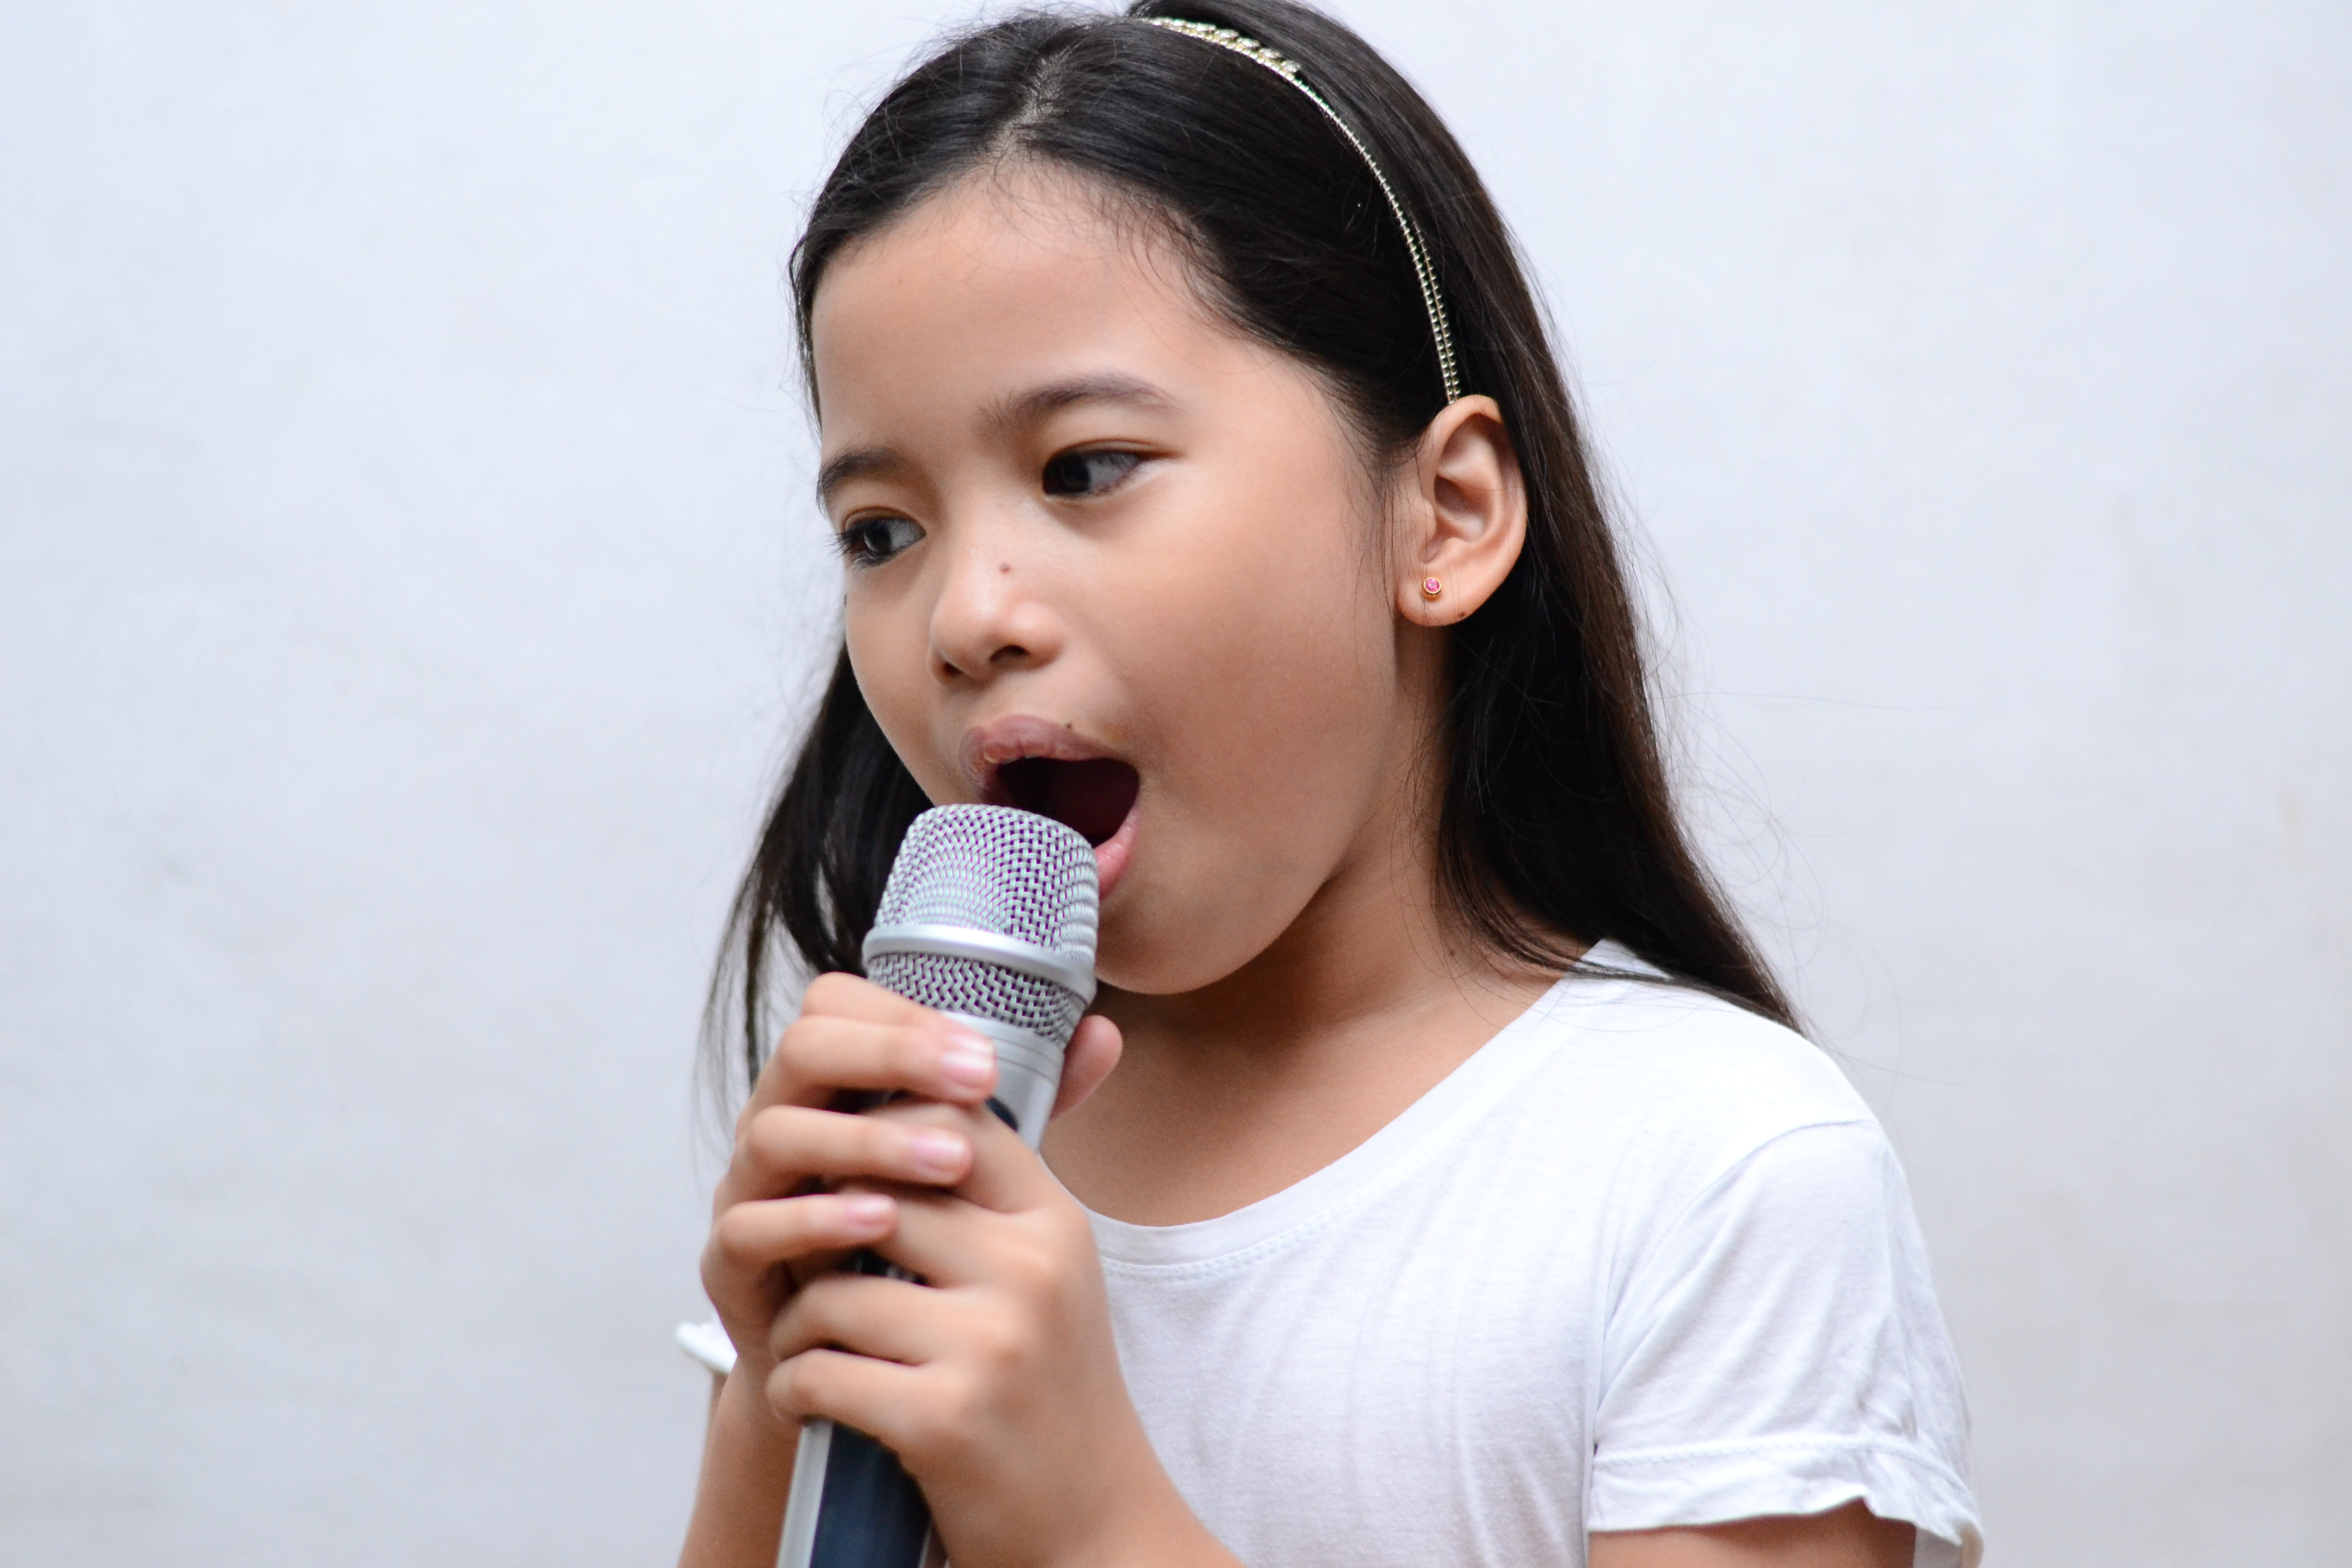 Spotting Your Child's Special Talents and Properly Nurturing Them by artline.com.au